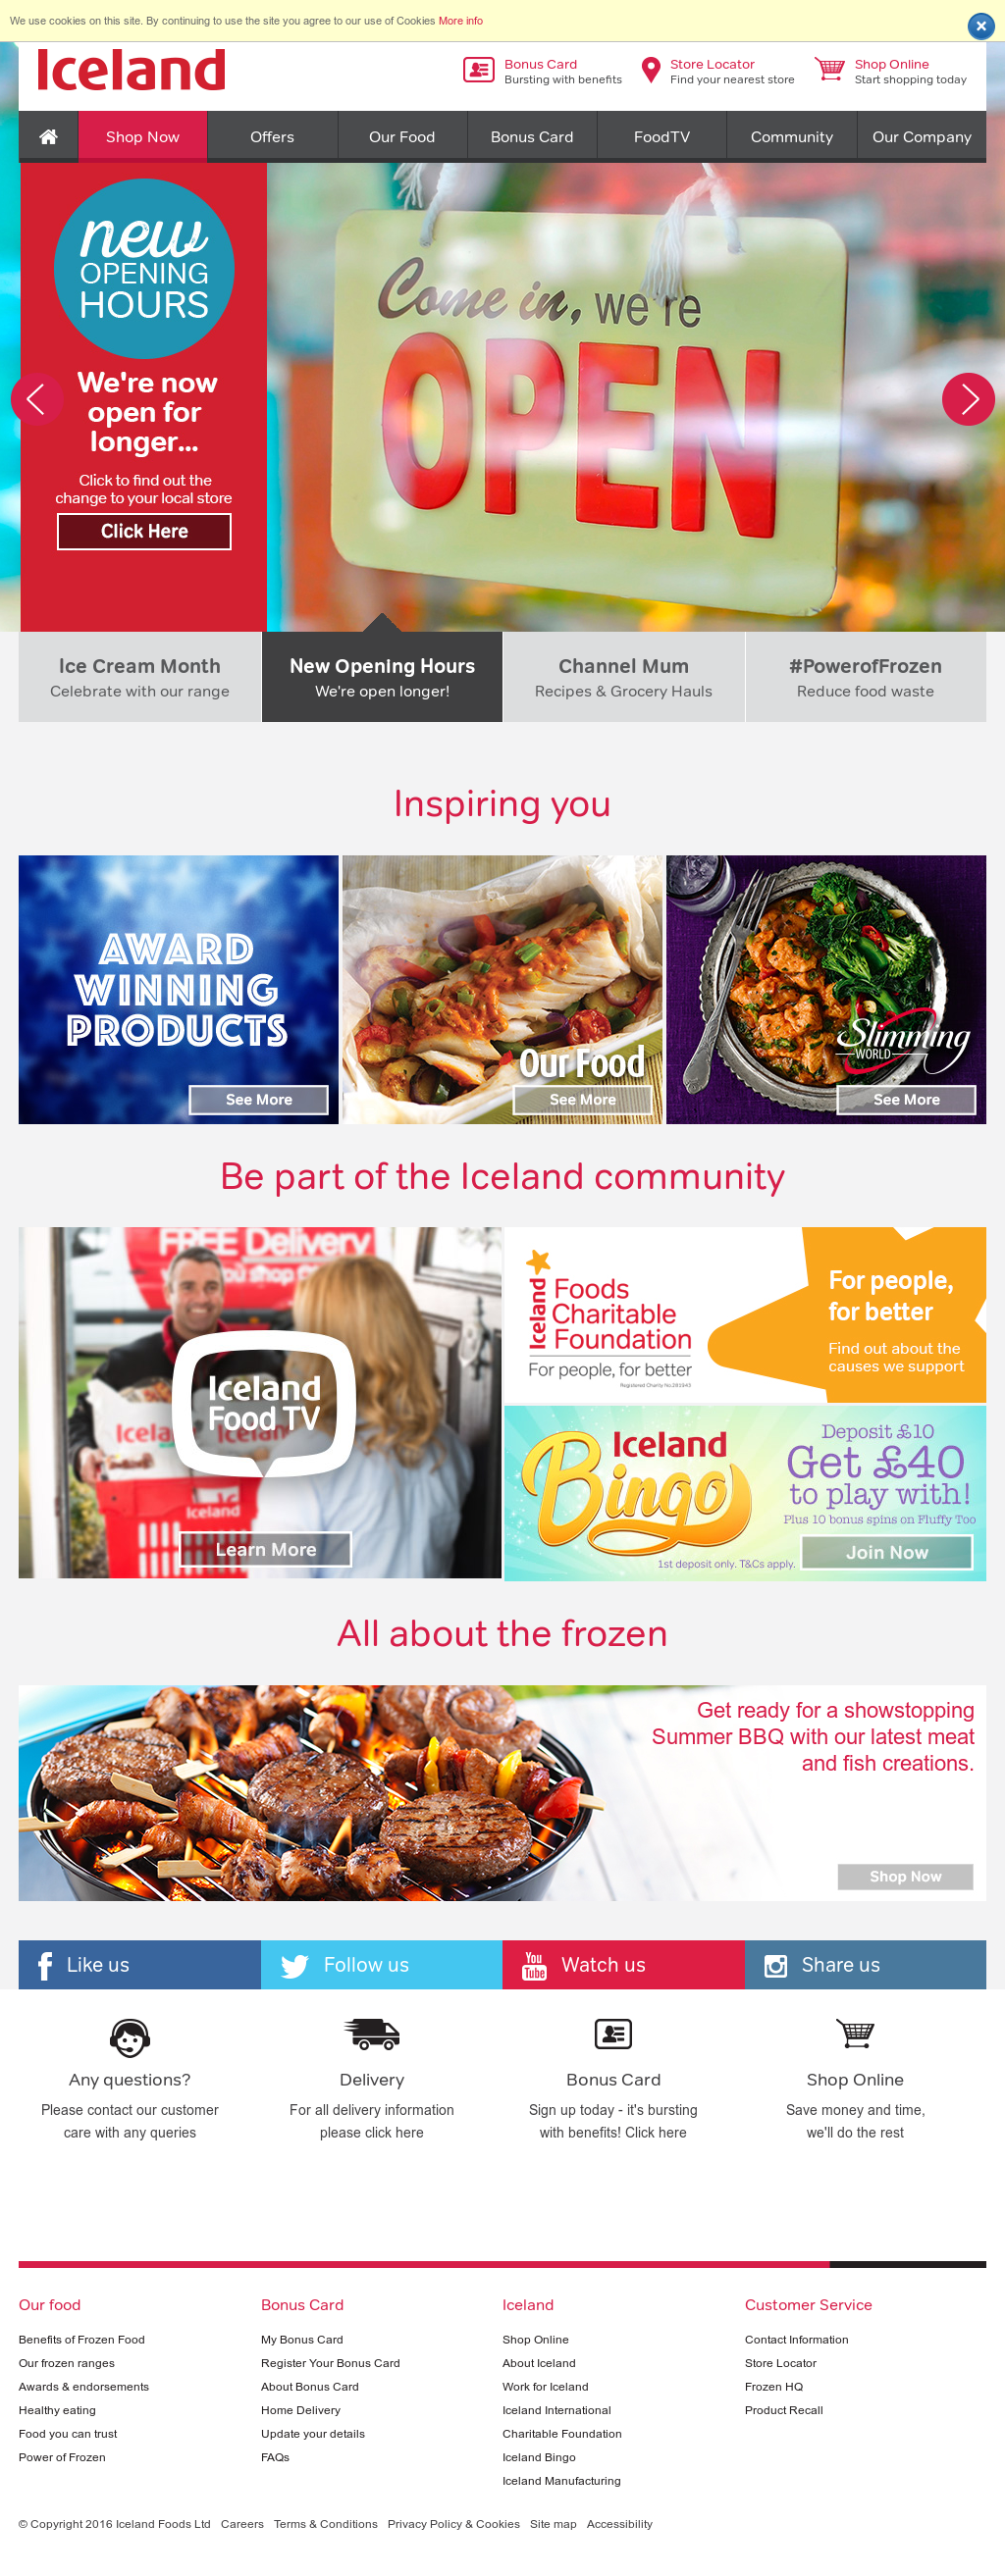 Iceland Foods Competitors, Revenue and Employees - Owler